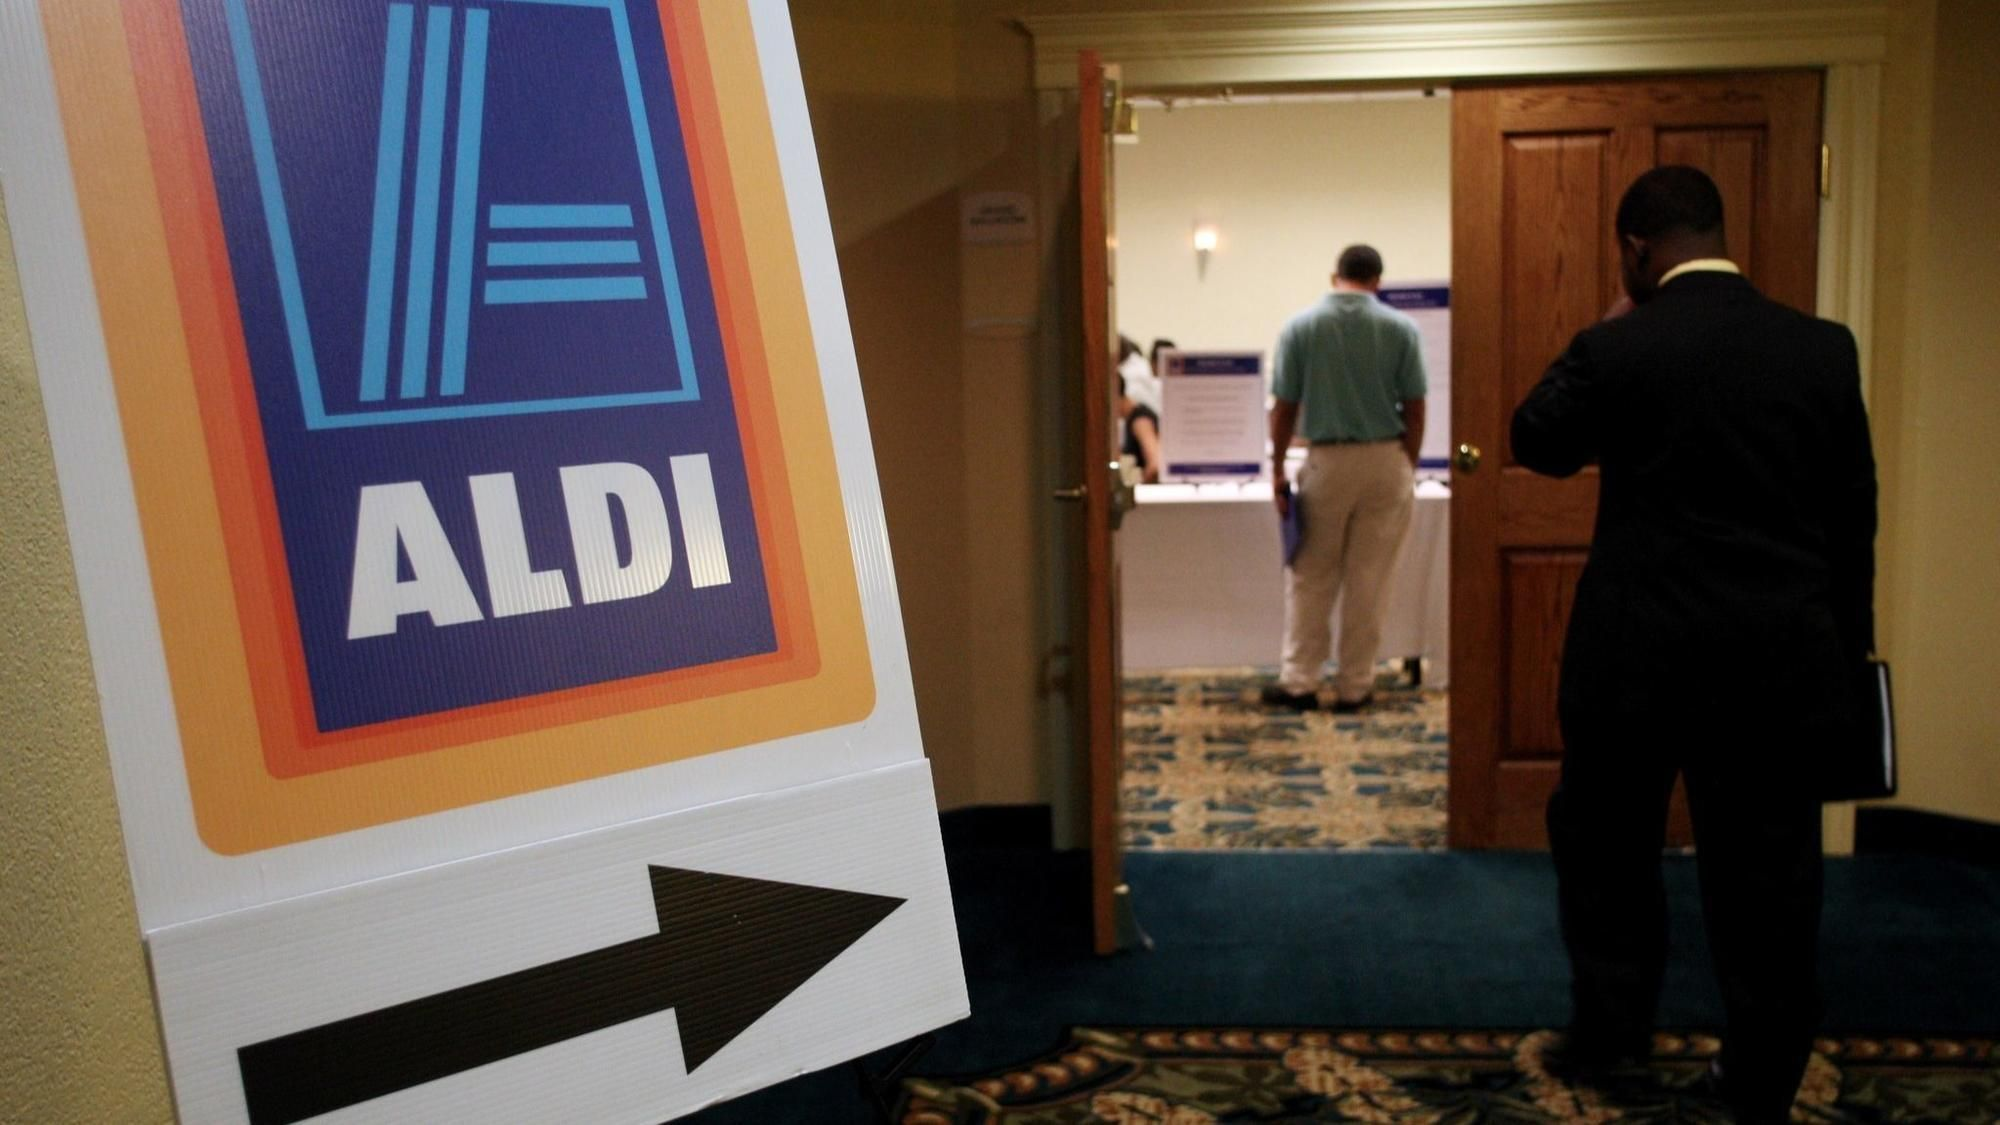 Aldi grocery store to hold job fair Thursday as part of